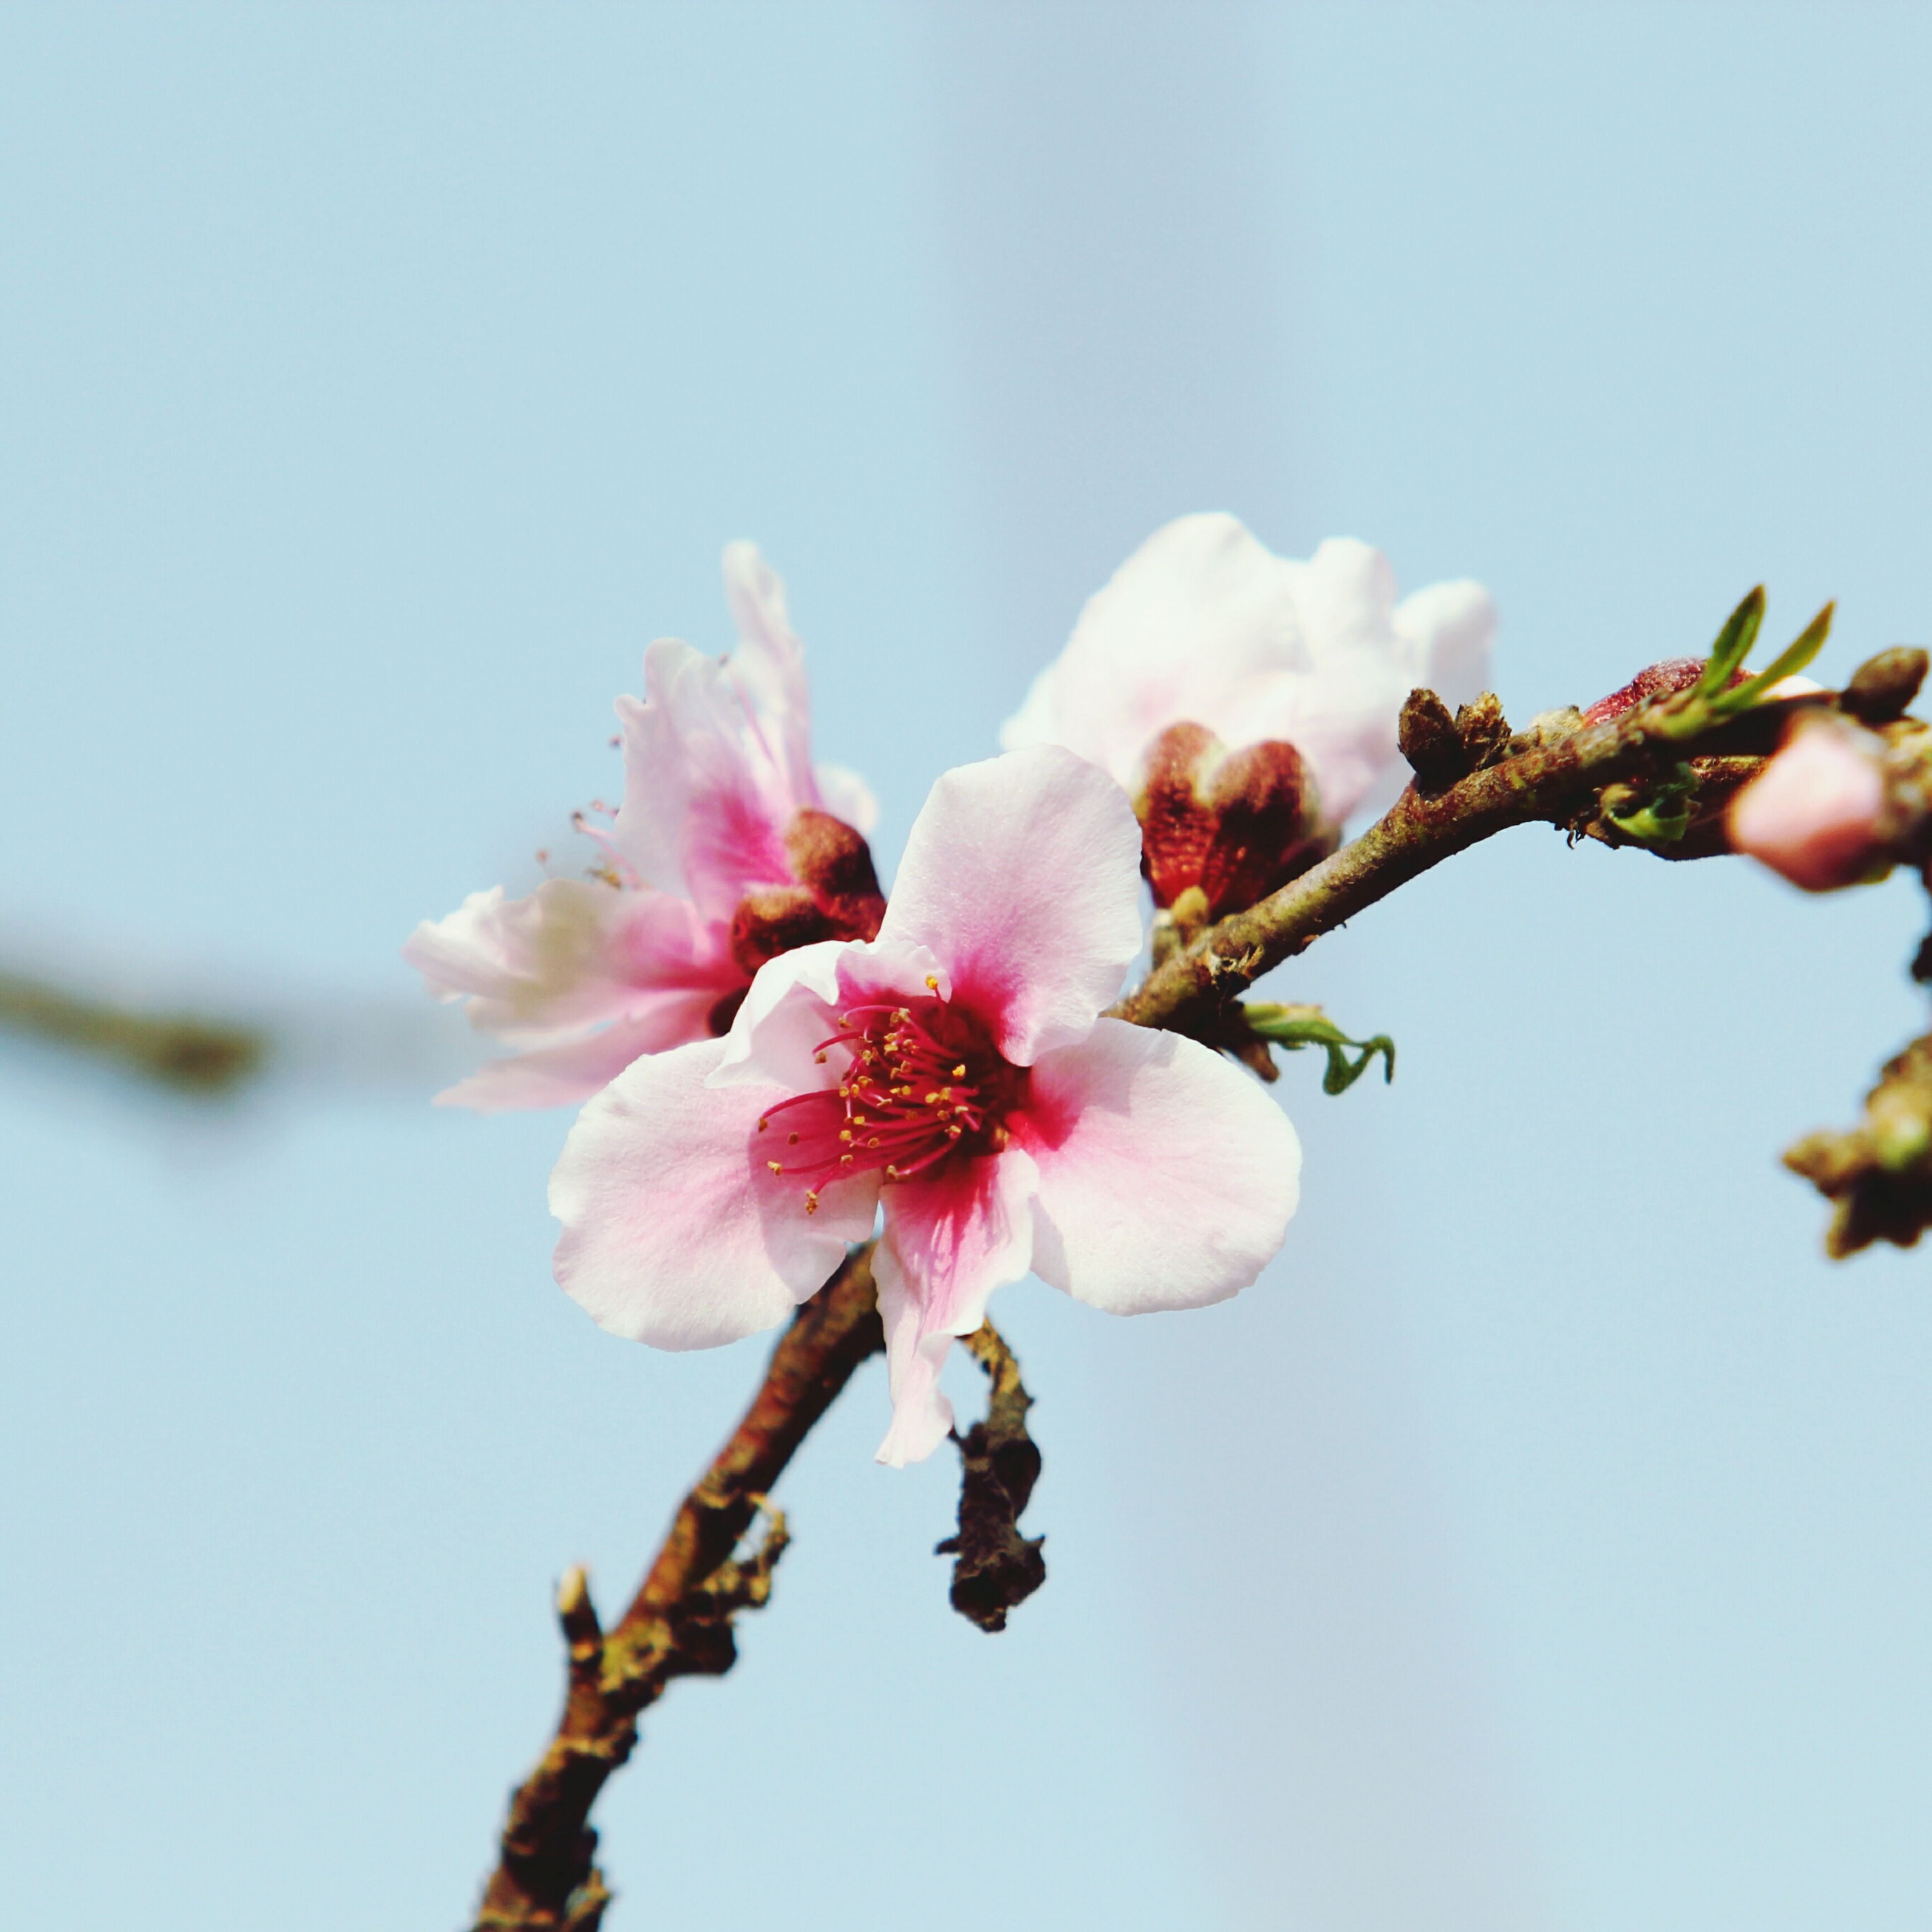 flower, freshness, fragility, growth, low angle view, beauty in nature, petal, close-up, nature, branch, flower head, pink color, focus on foreground, bud, blossom, in bloom, blooming, clear sky, day, tree